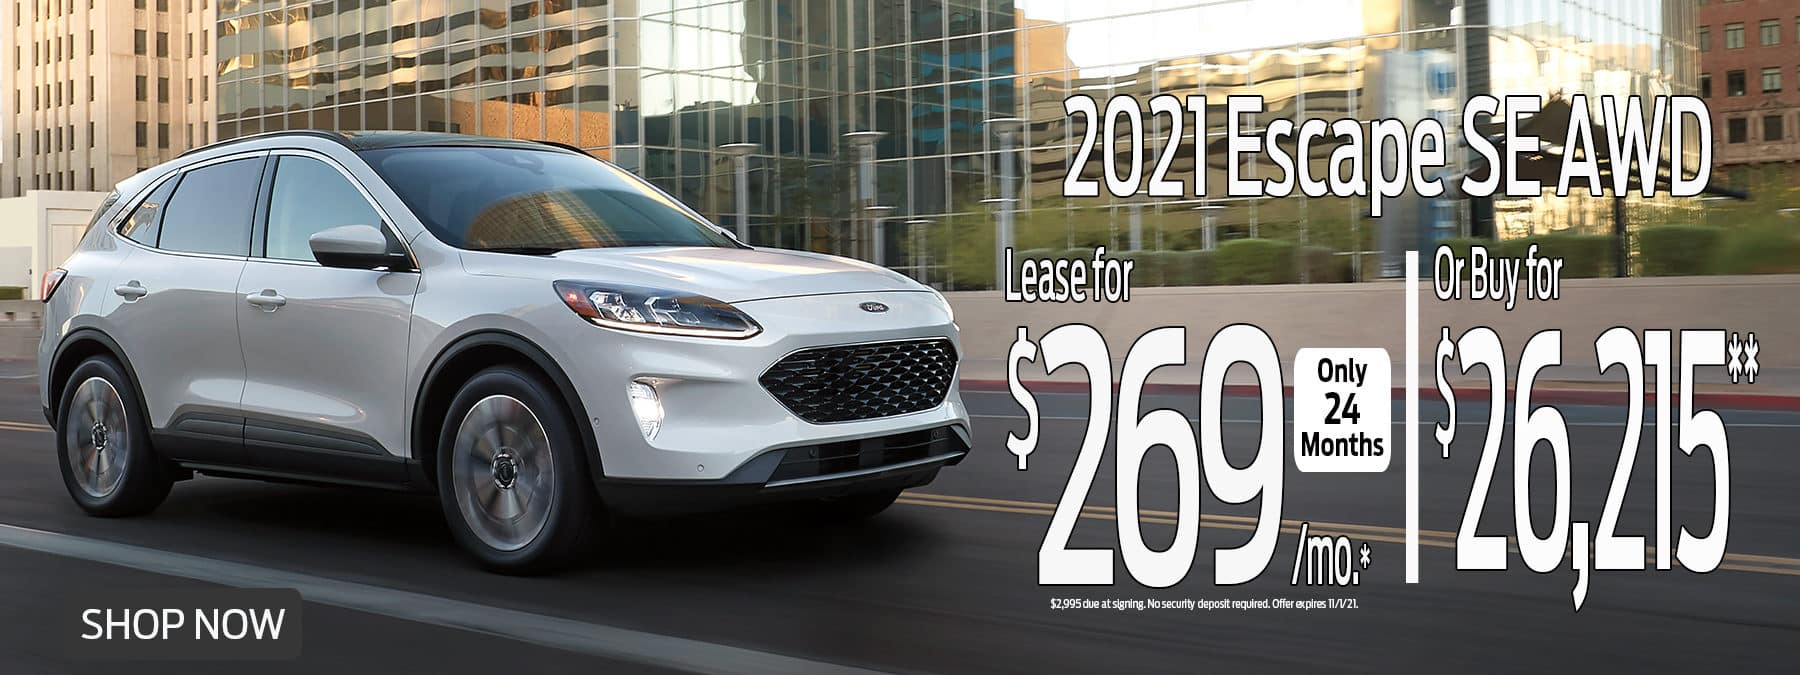 2021 Escape Special Lease Offer